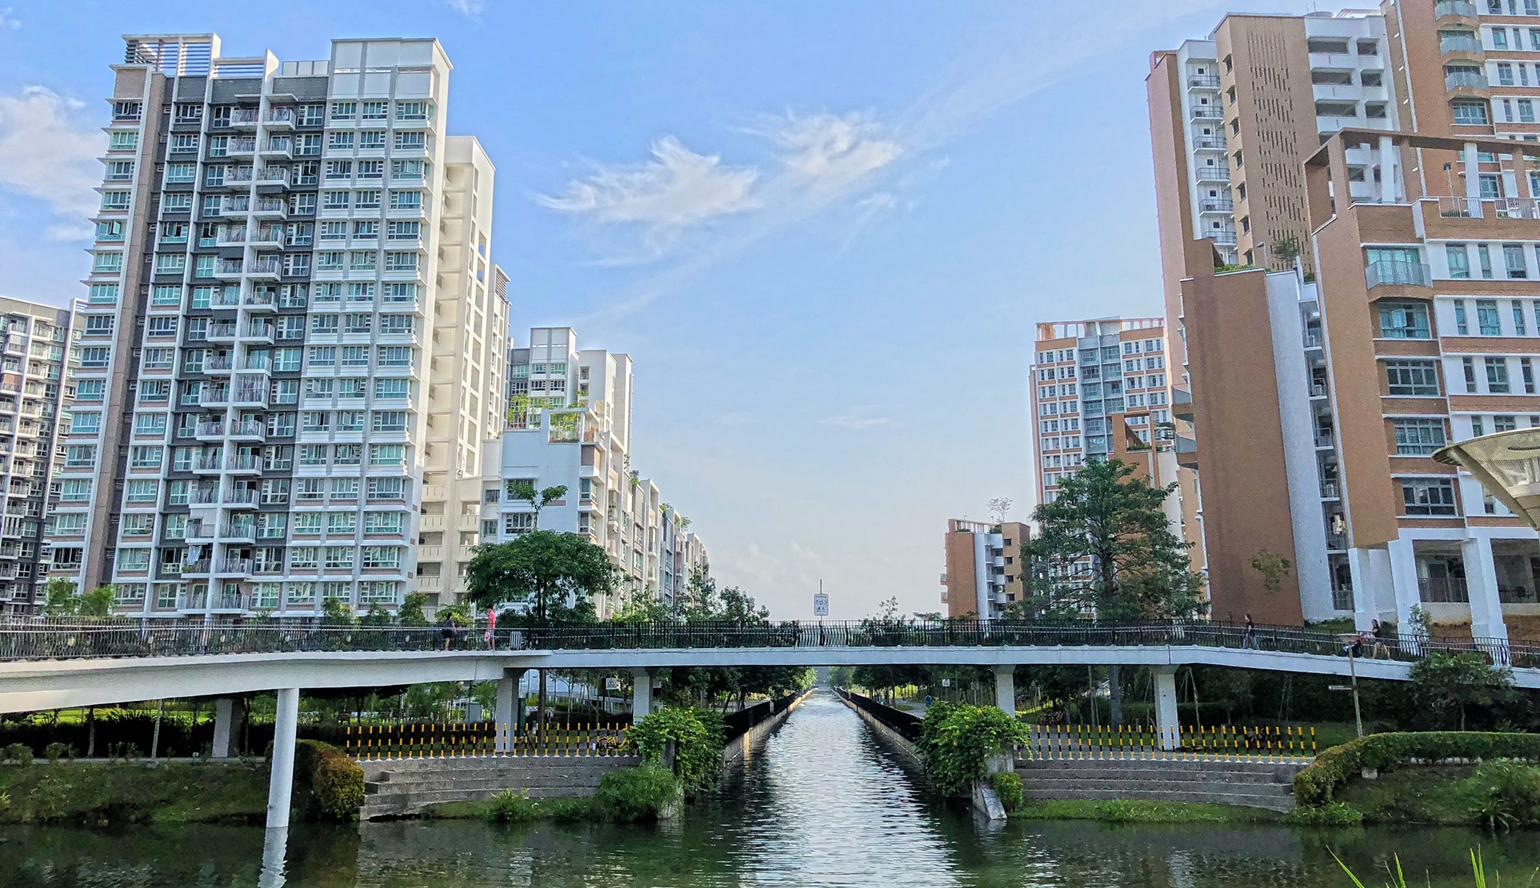 HDB towns typically integrate greenery to create a more sustainable environment for residents